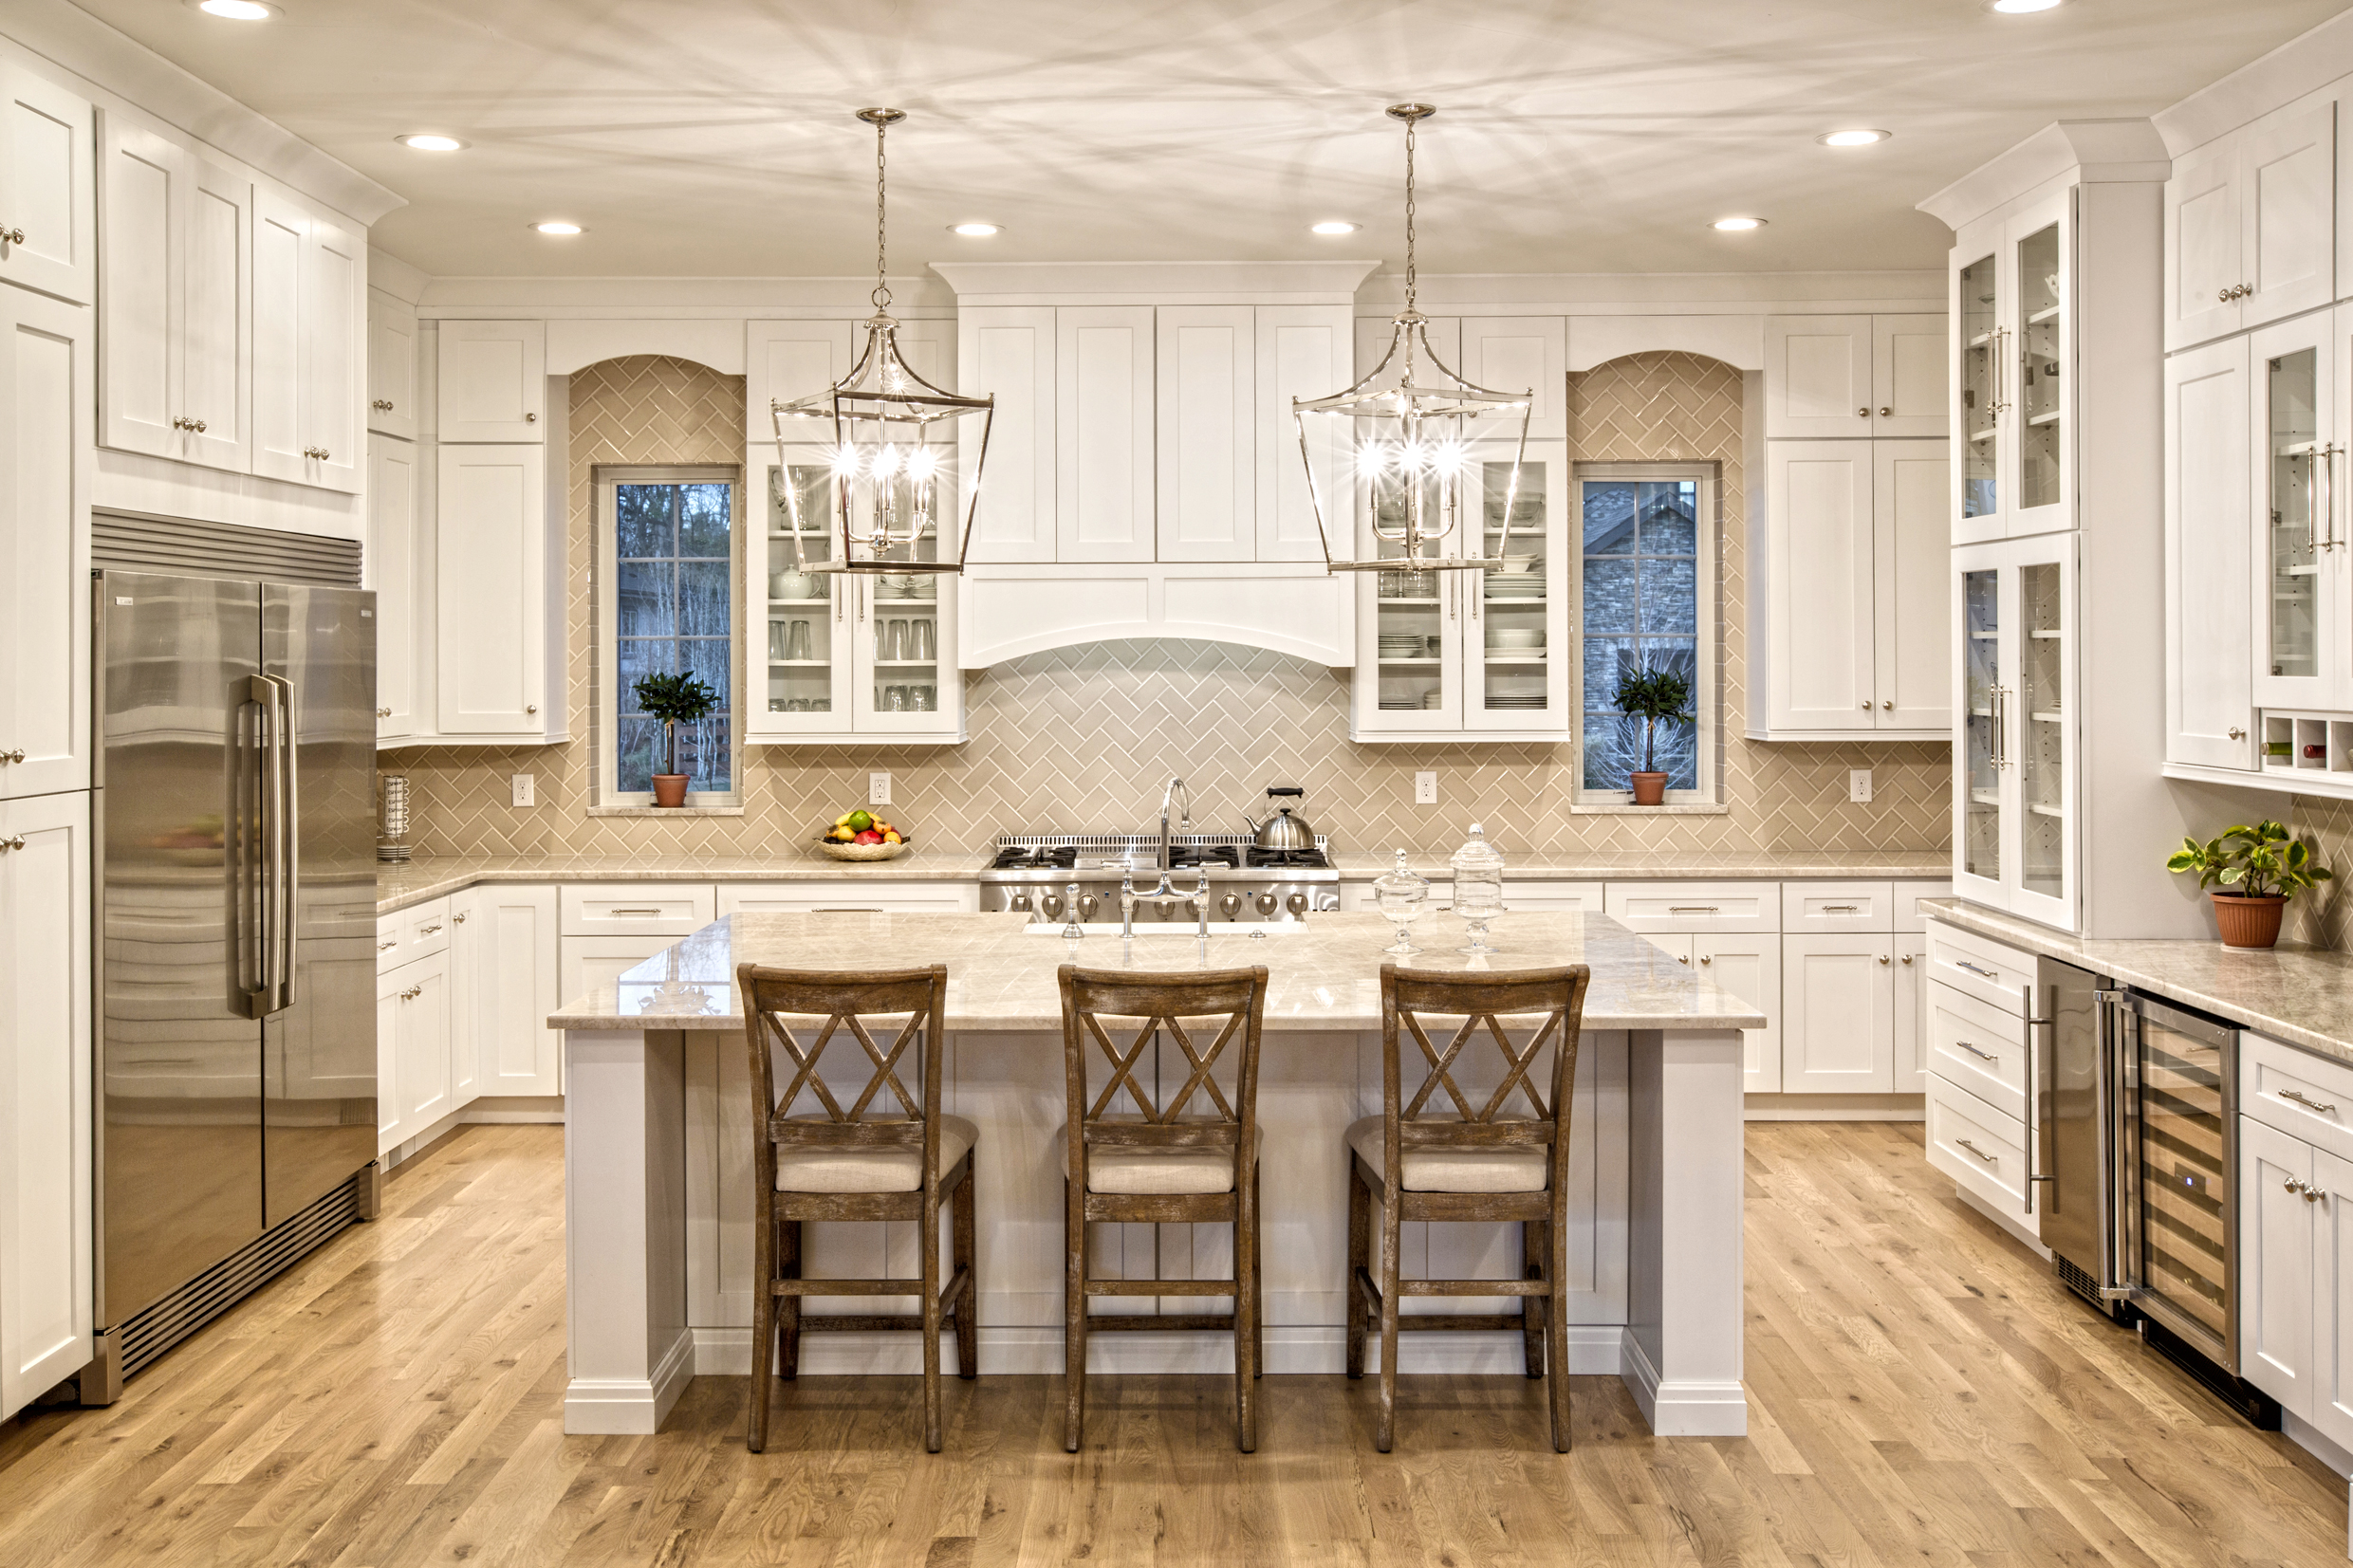 Taj Mahal quartzite kitchen countertop by YK stone center in denver co